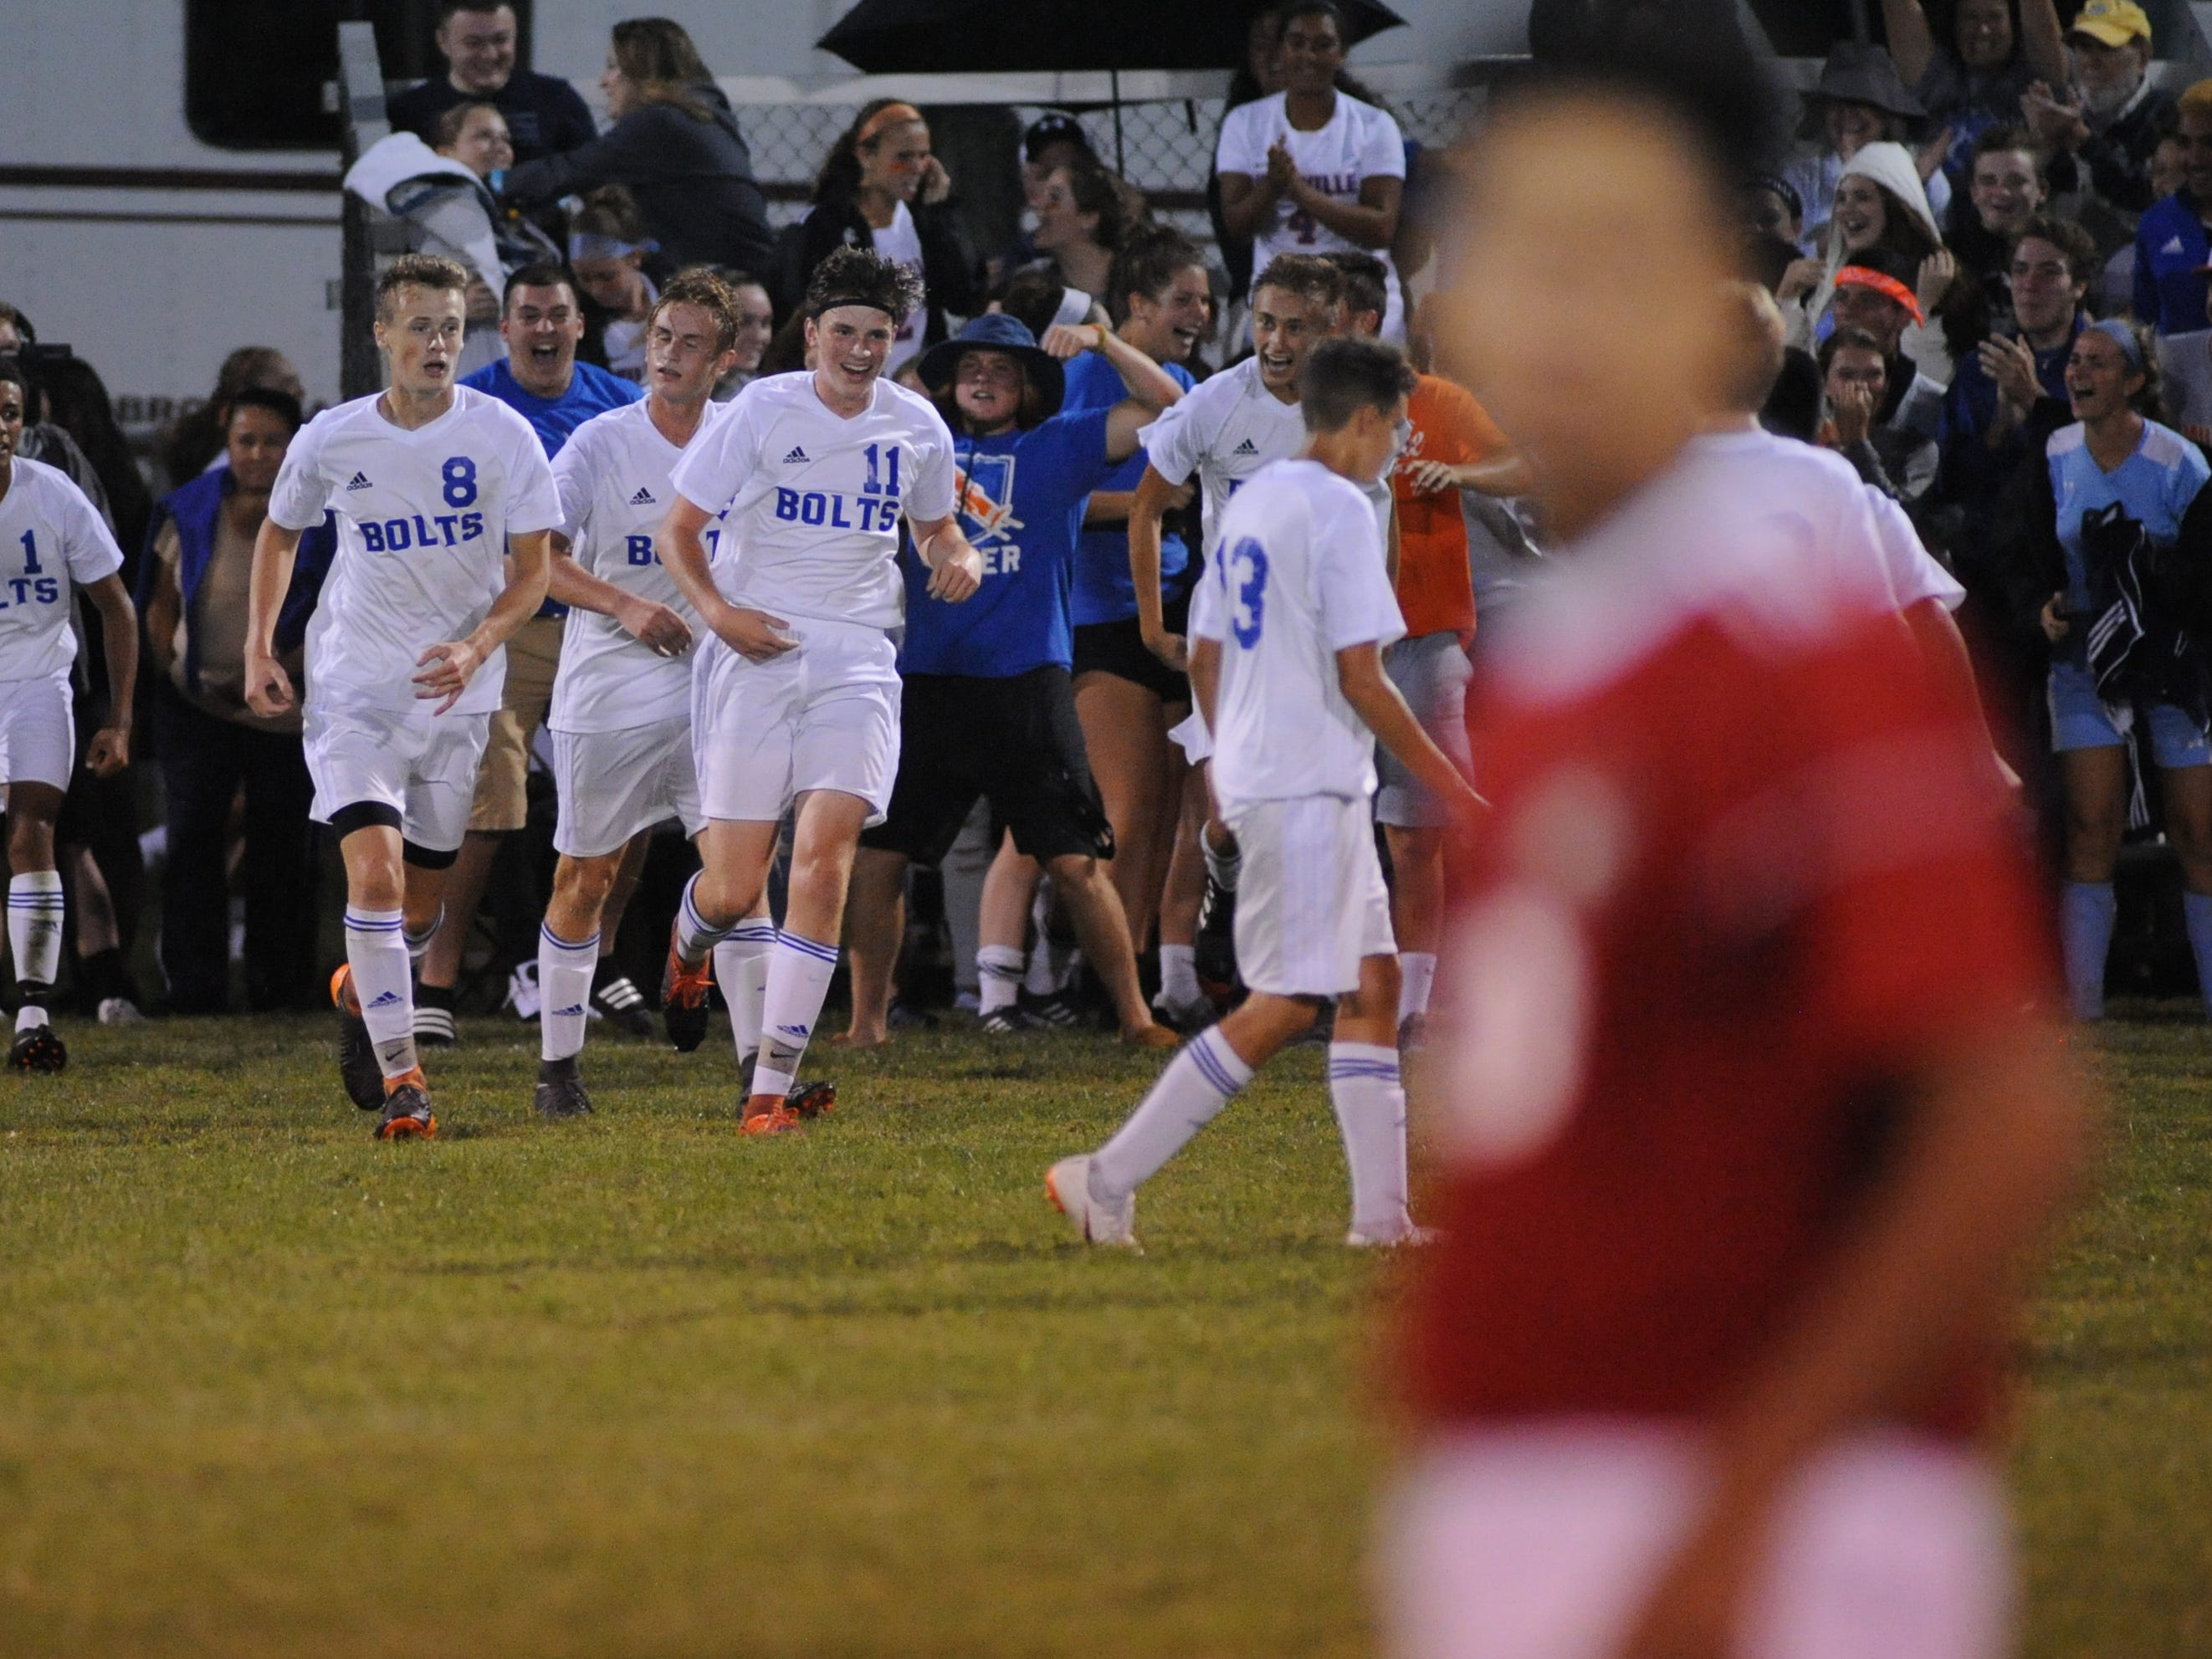 Millville players celebrate a thunderbolts goal scored during a boys soccer game against Vineland at Romano Sports Complex in Vineland, Monday, Sept. 17, 2018.